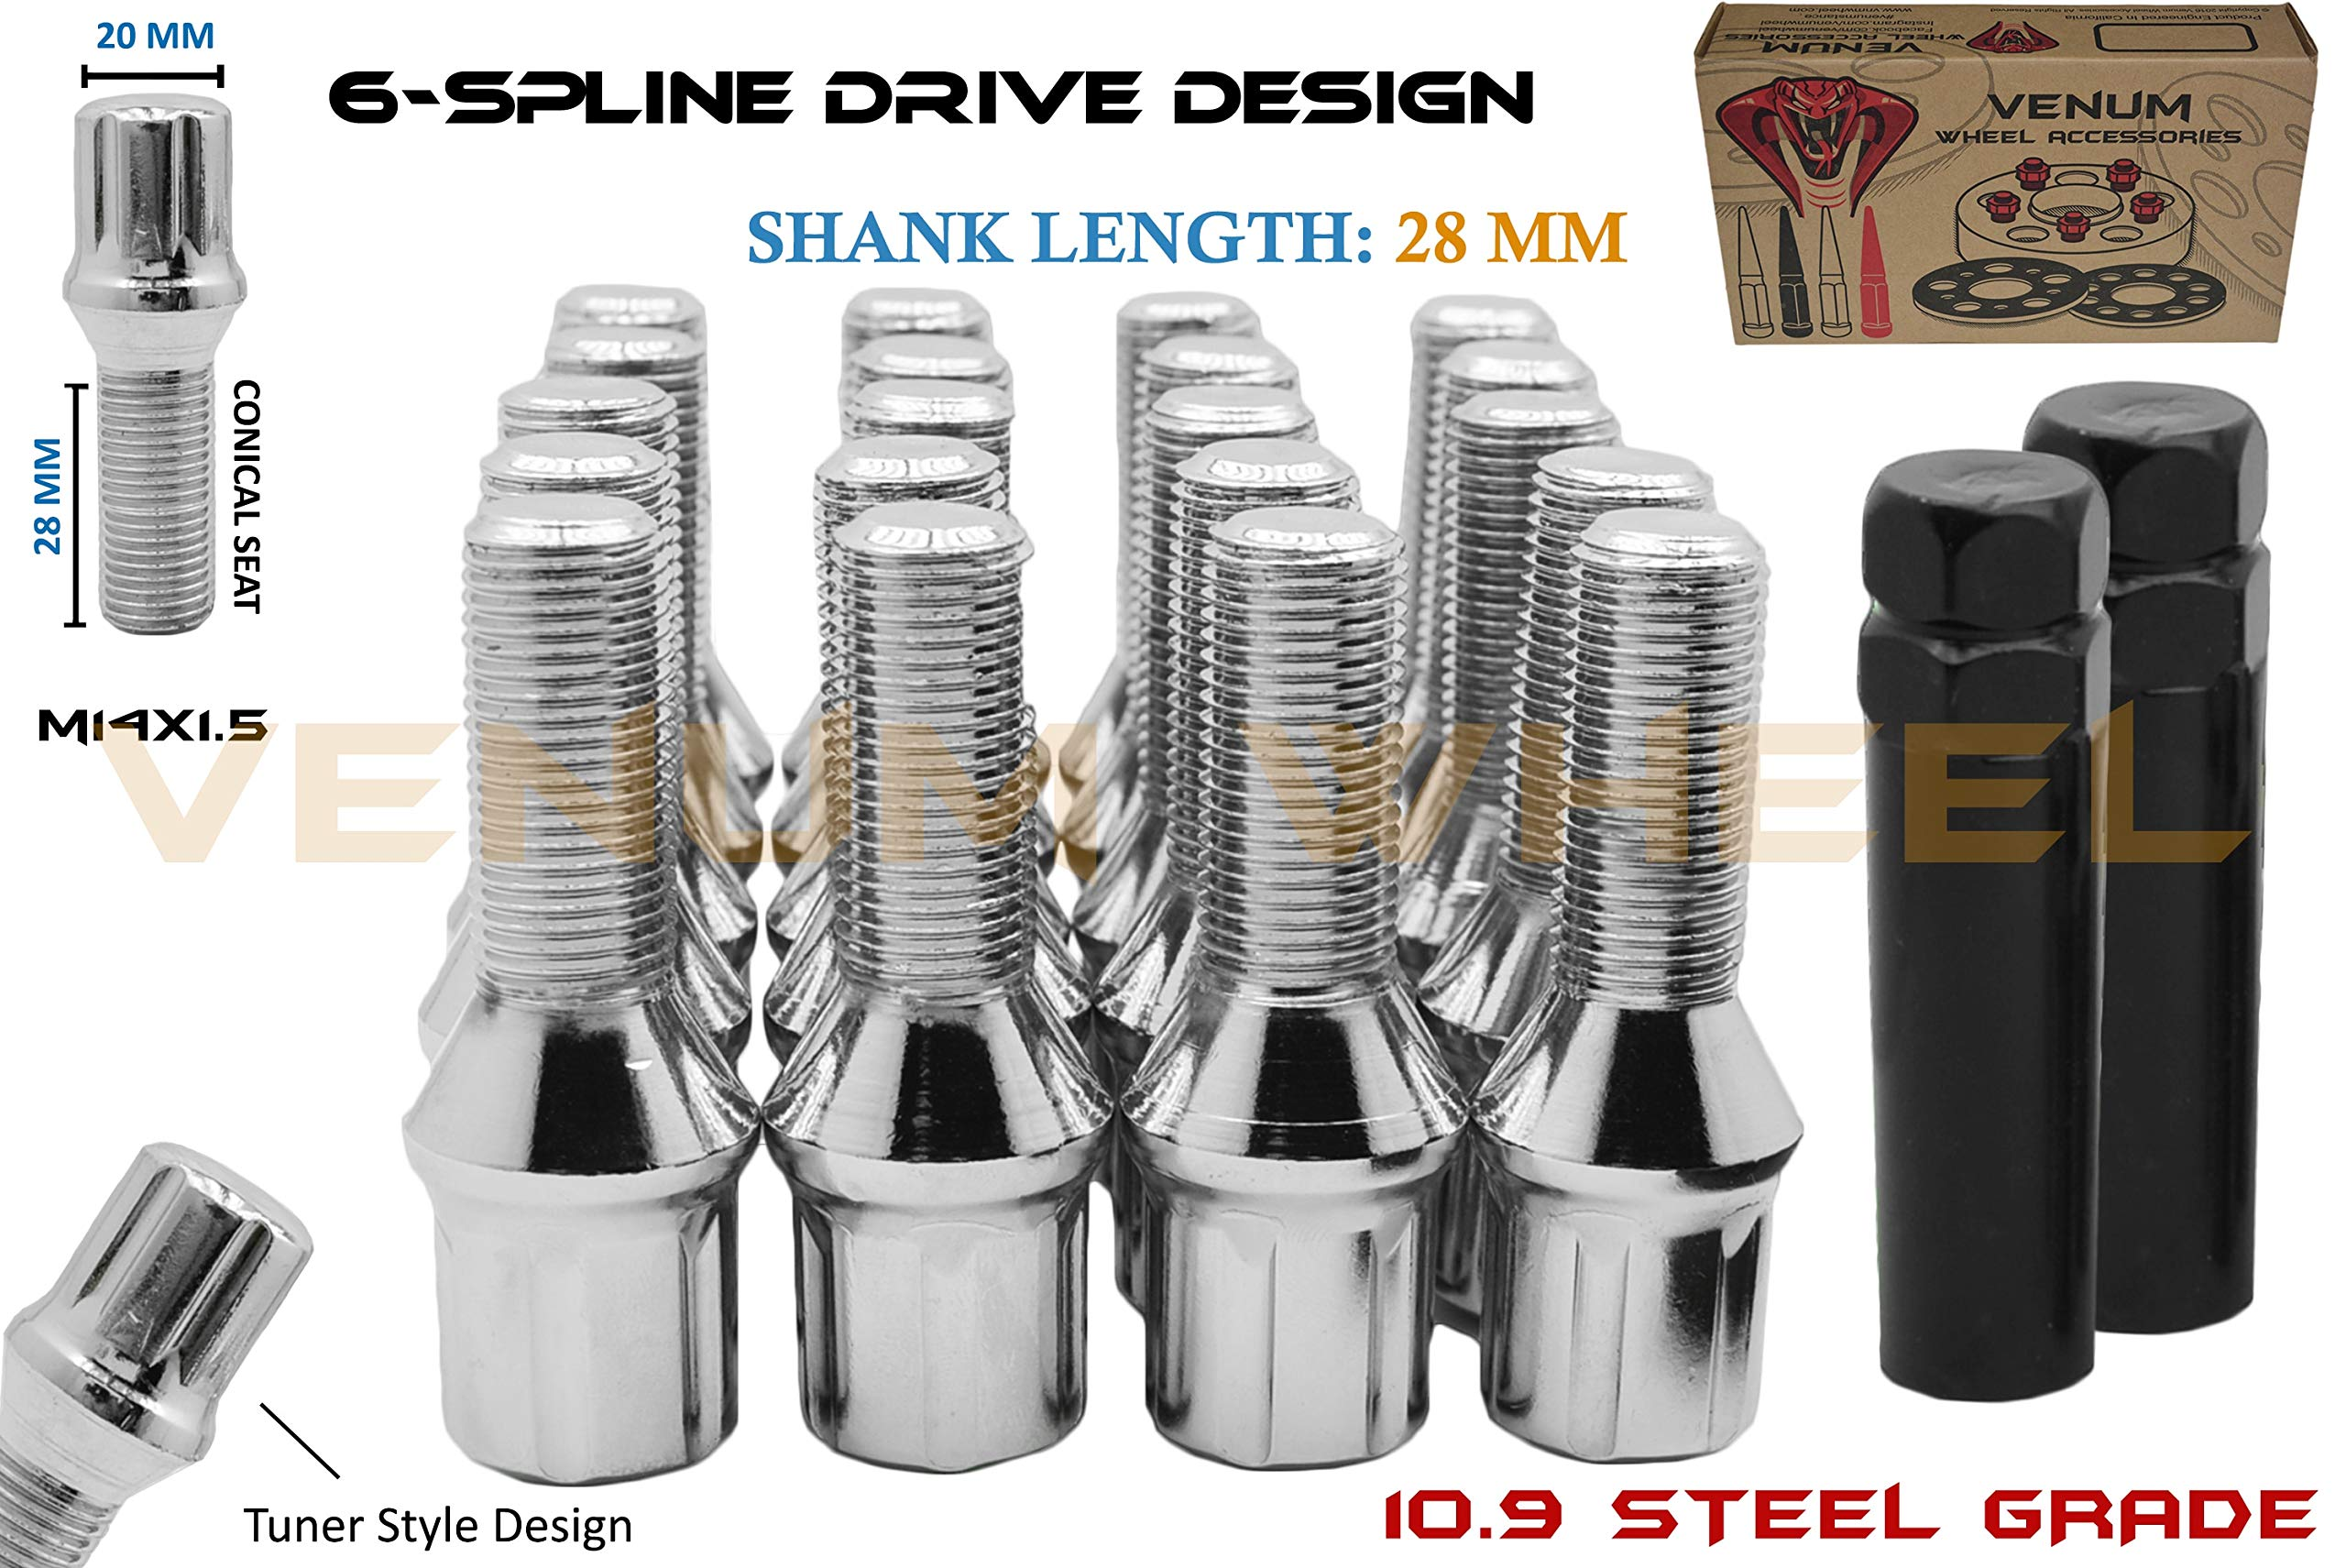 Cone Seat 20pc Silver Extended Lug Bolts 40mm Shank Length 14x1.5 Threads